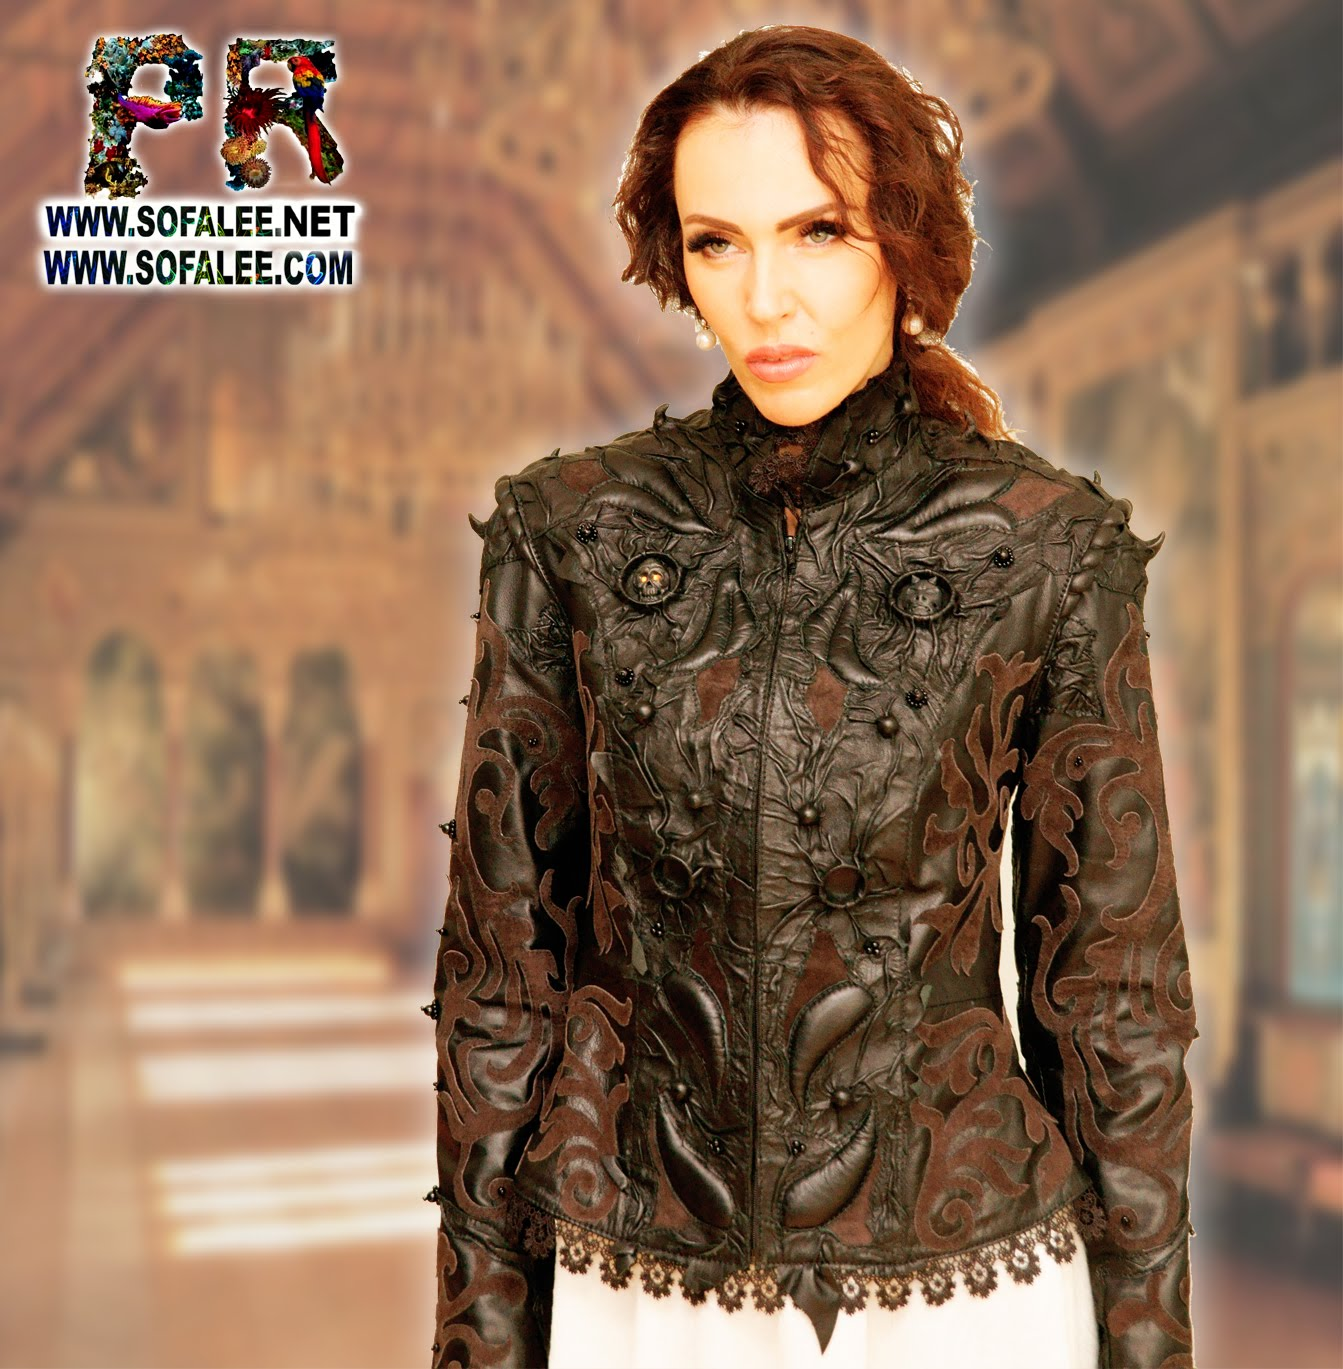 clothes for women by sofalee genuine leather jacket handmade exclusive plant weaving pattern